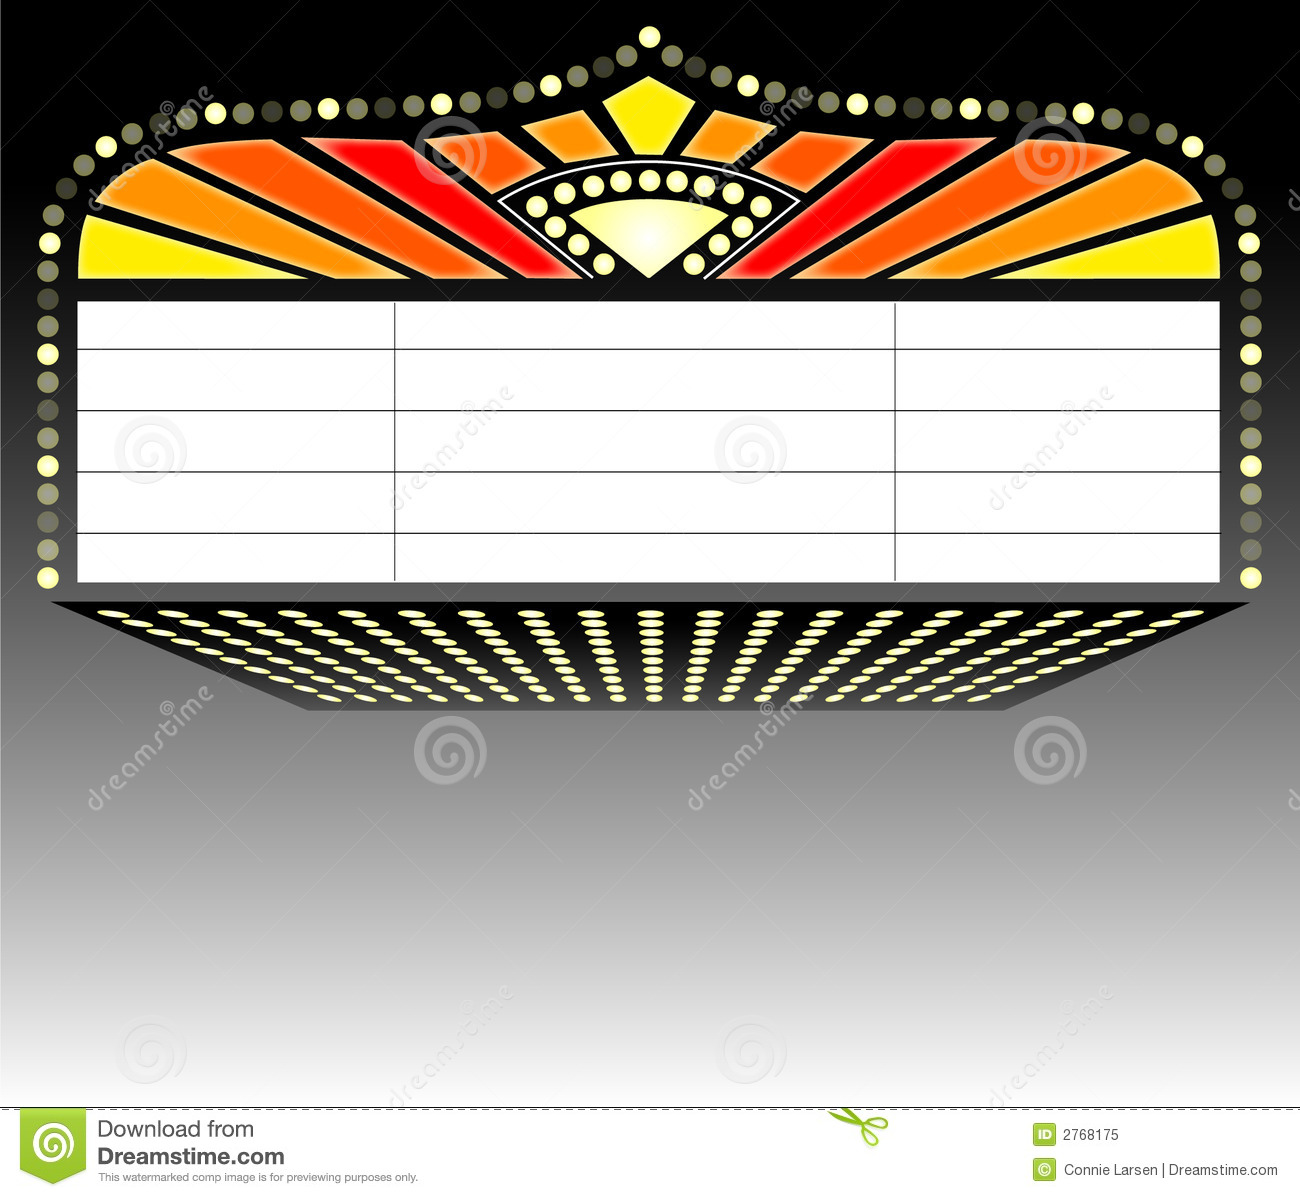 Marquee clipart. Broadway